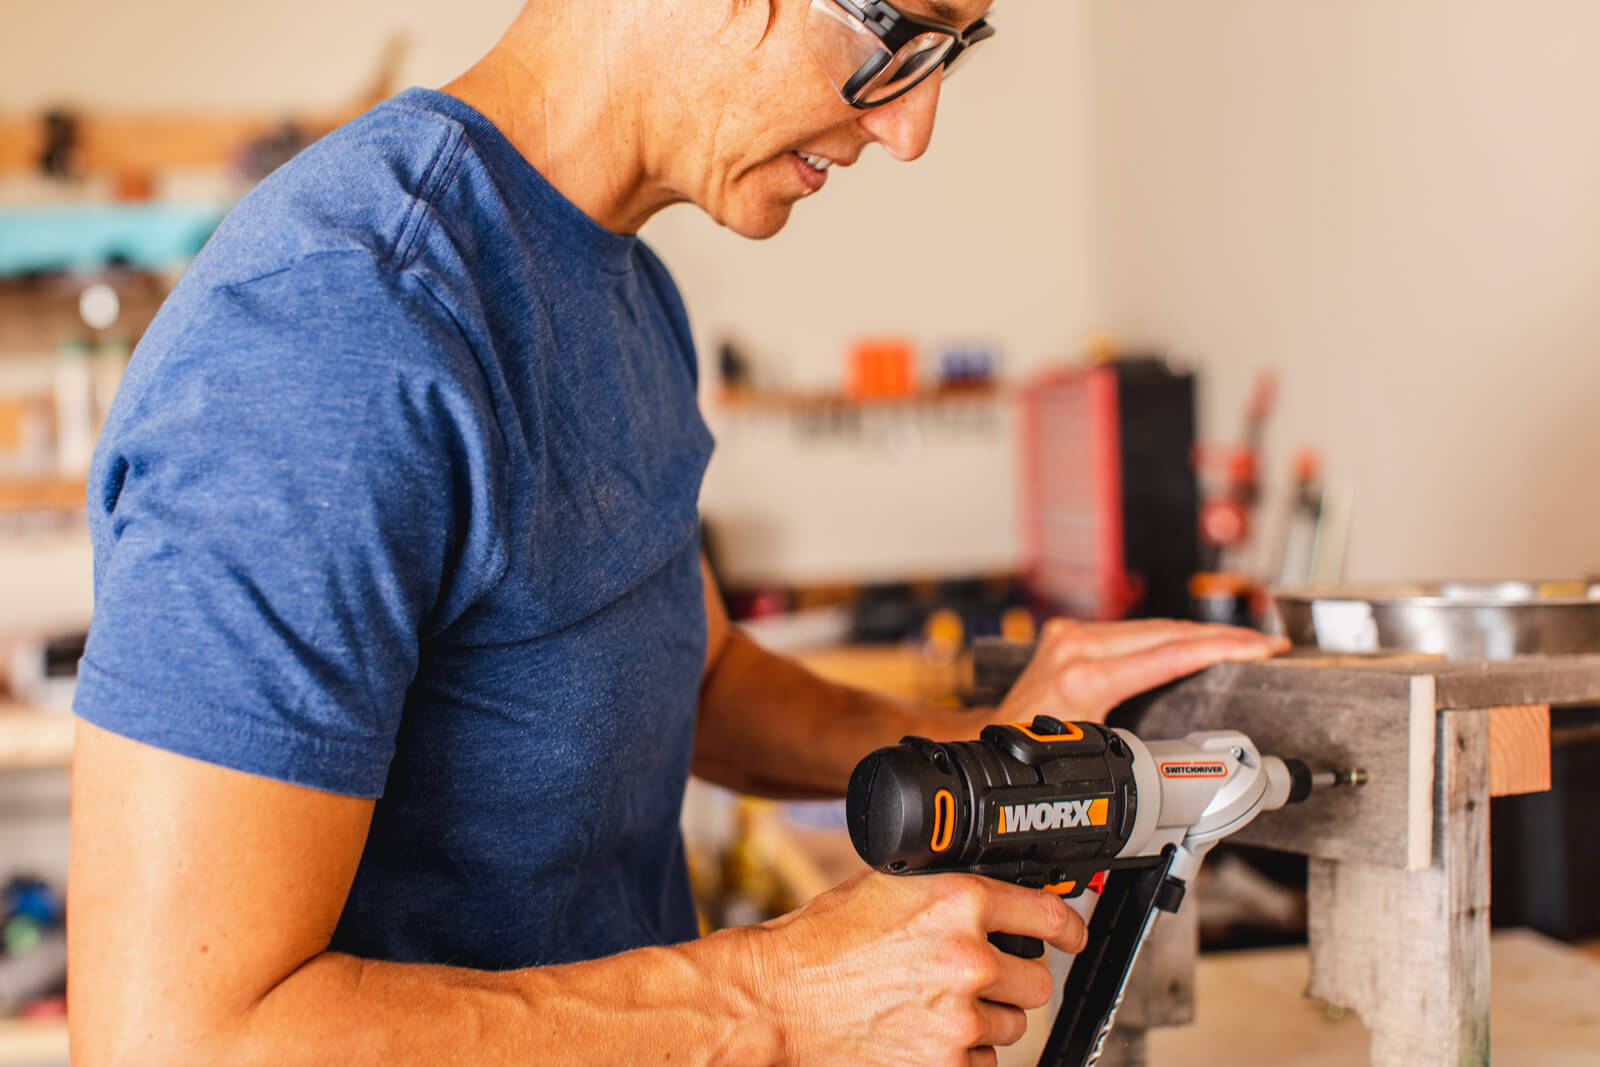 Best Power Tools for your DIY Toolkit